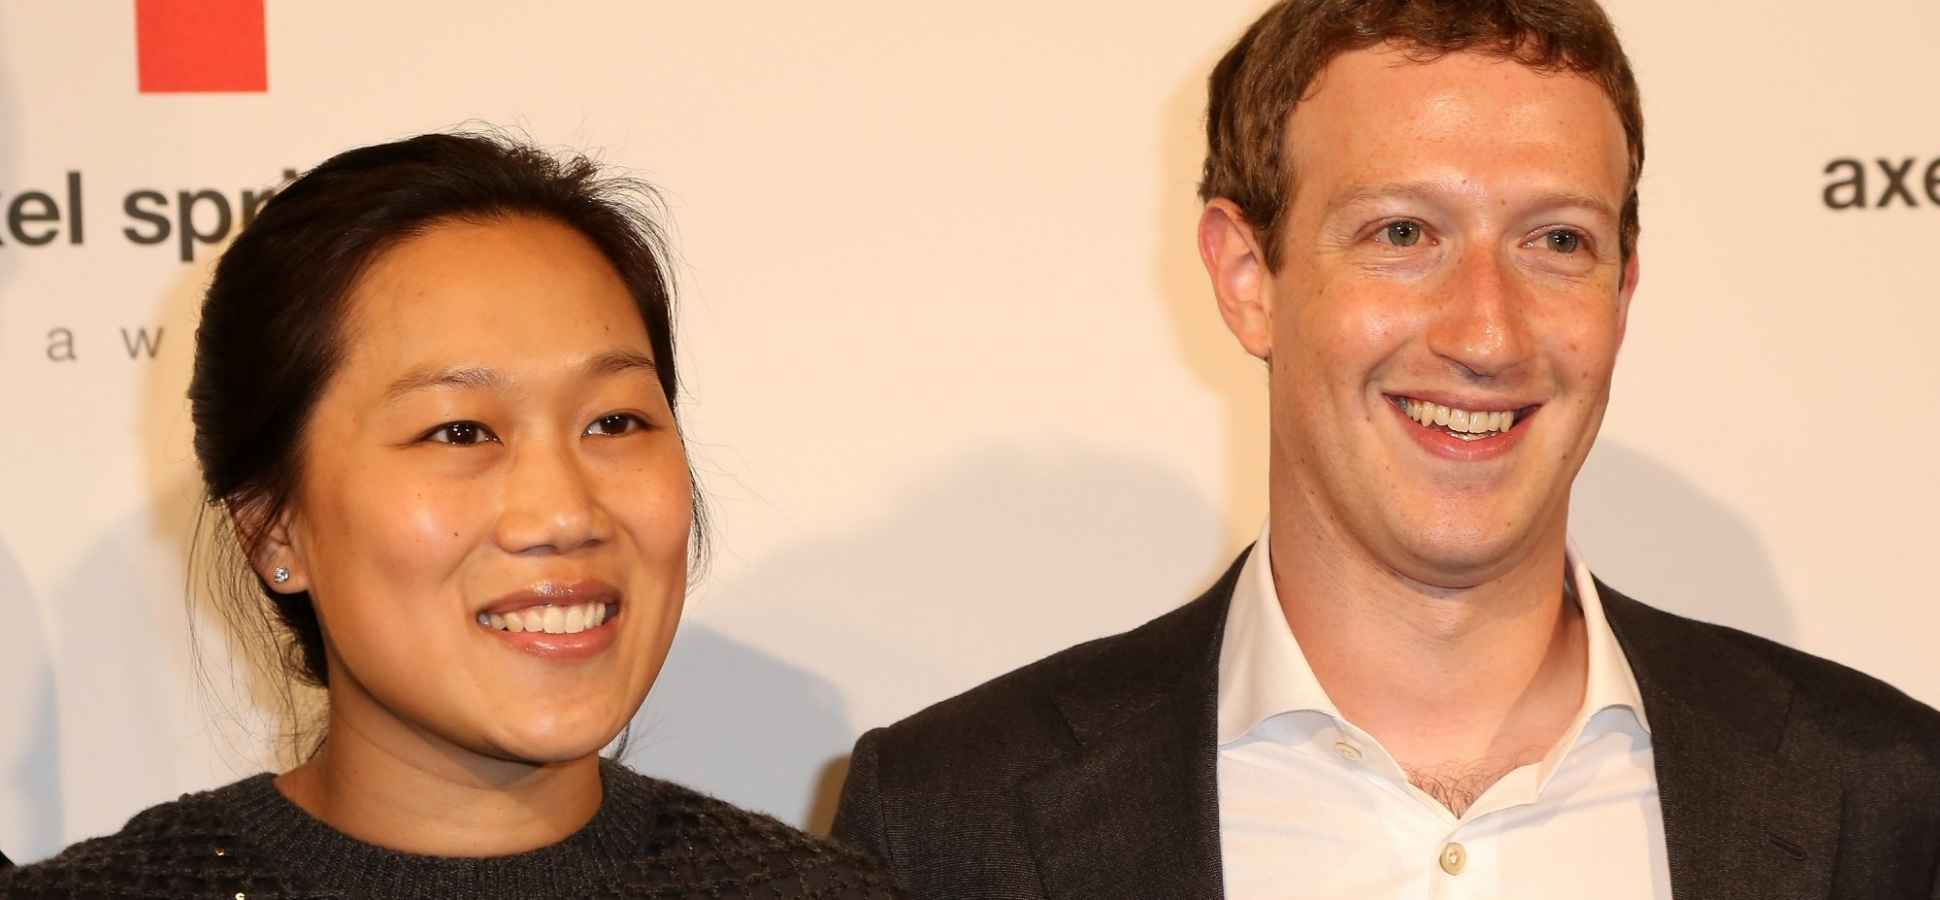 Mark Zuckerberg, Facing Class Action Lawsuit, Scraps Plan to Issue Non-Voting Facebook Shares